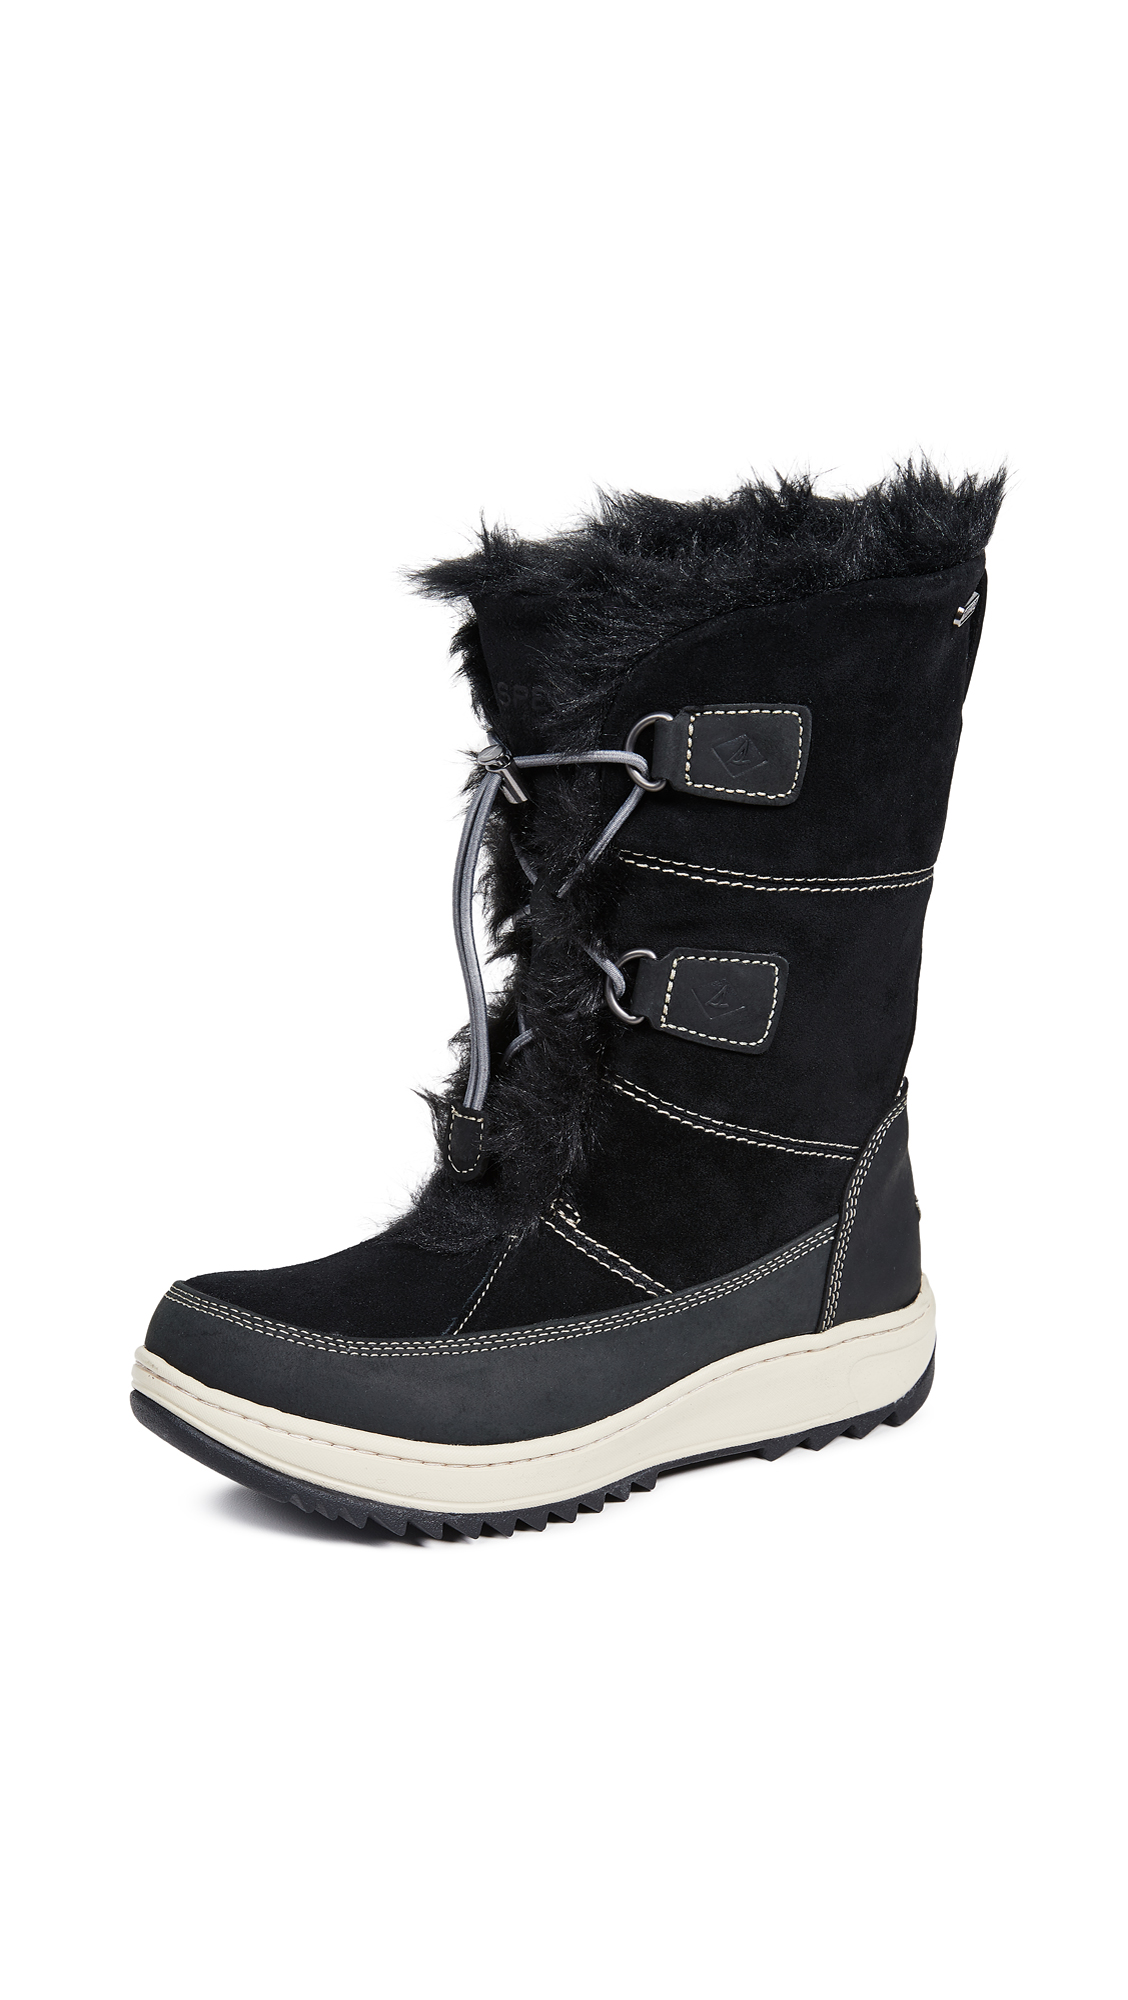 Sperry Powder Valley Boots - Black